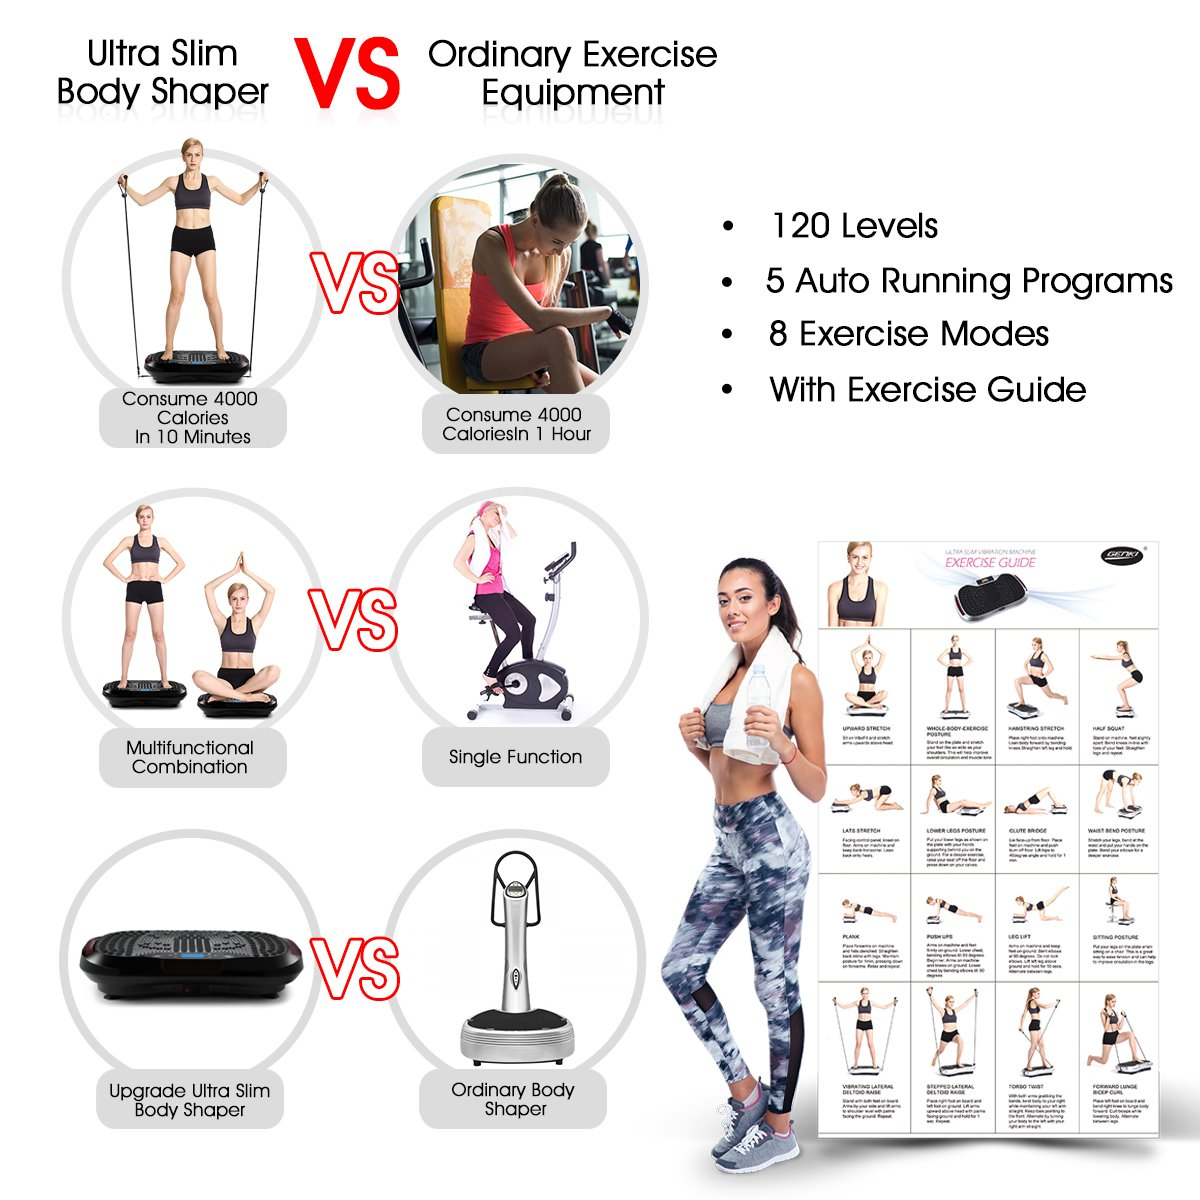 GENKI YD-1015B Bluetooth Vibration Platform Fitness Machine with 2 Bands &Remote, Max User Weight 330Lbs by GENKI (Image #3)